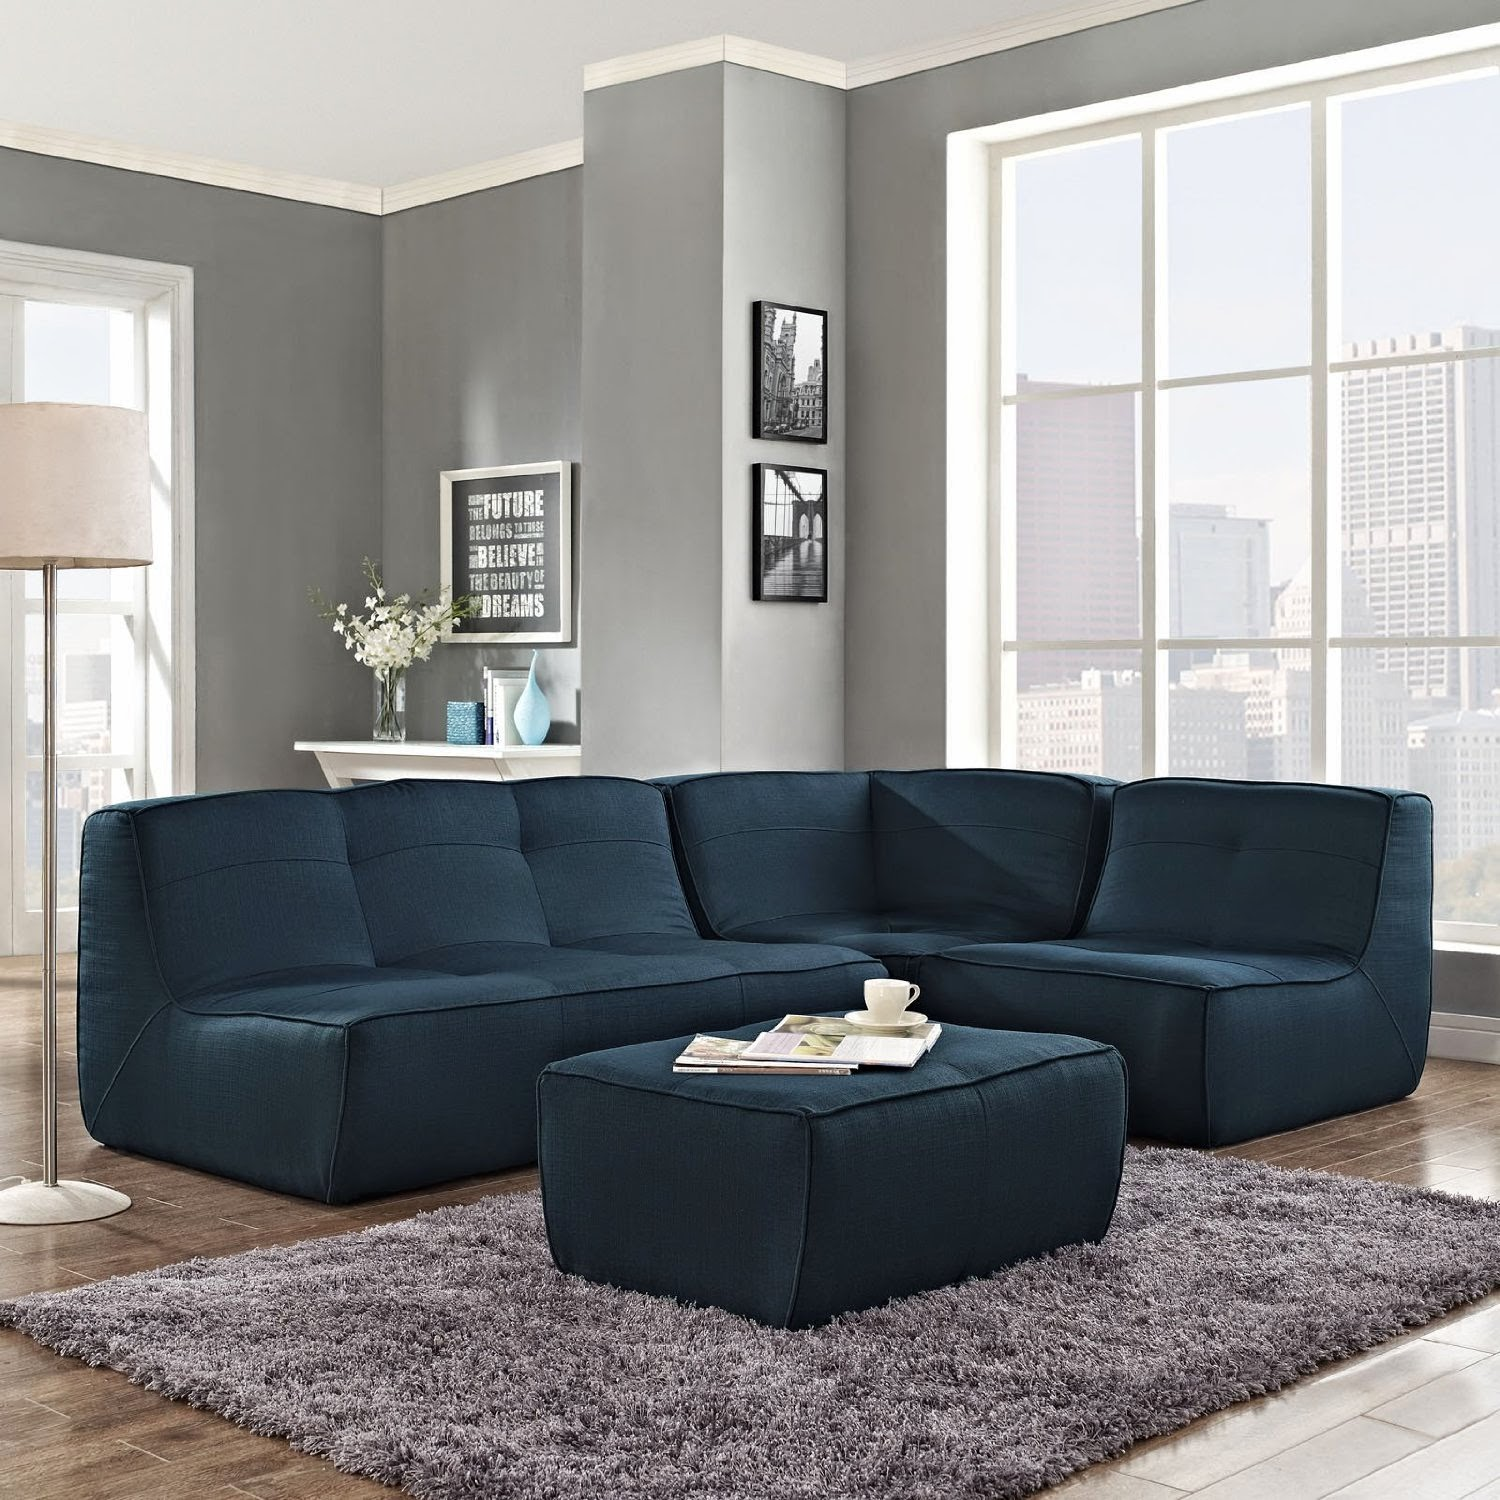 blue couch blue sectional couch. Black Bedroom Furniture Sets. Home Design Ideas